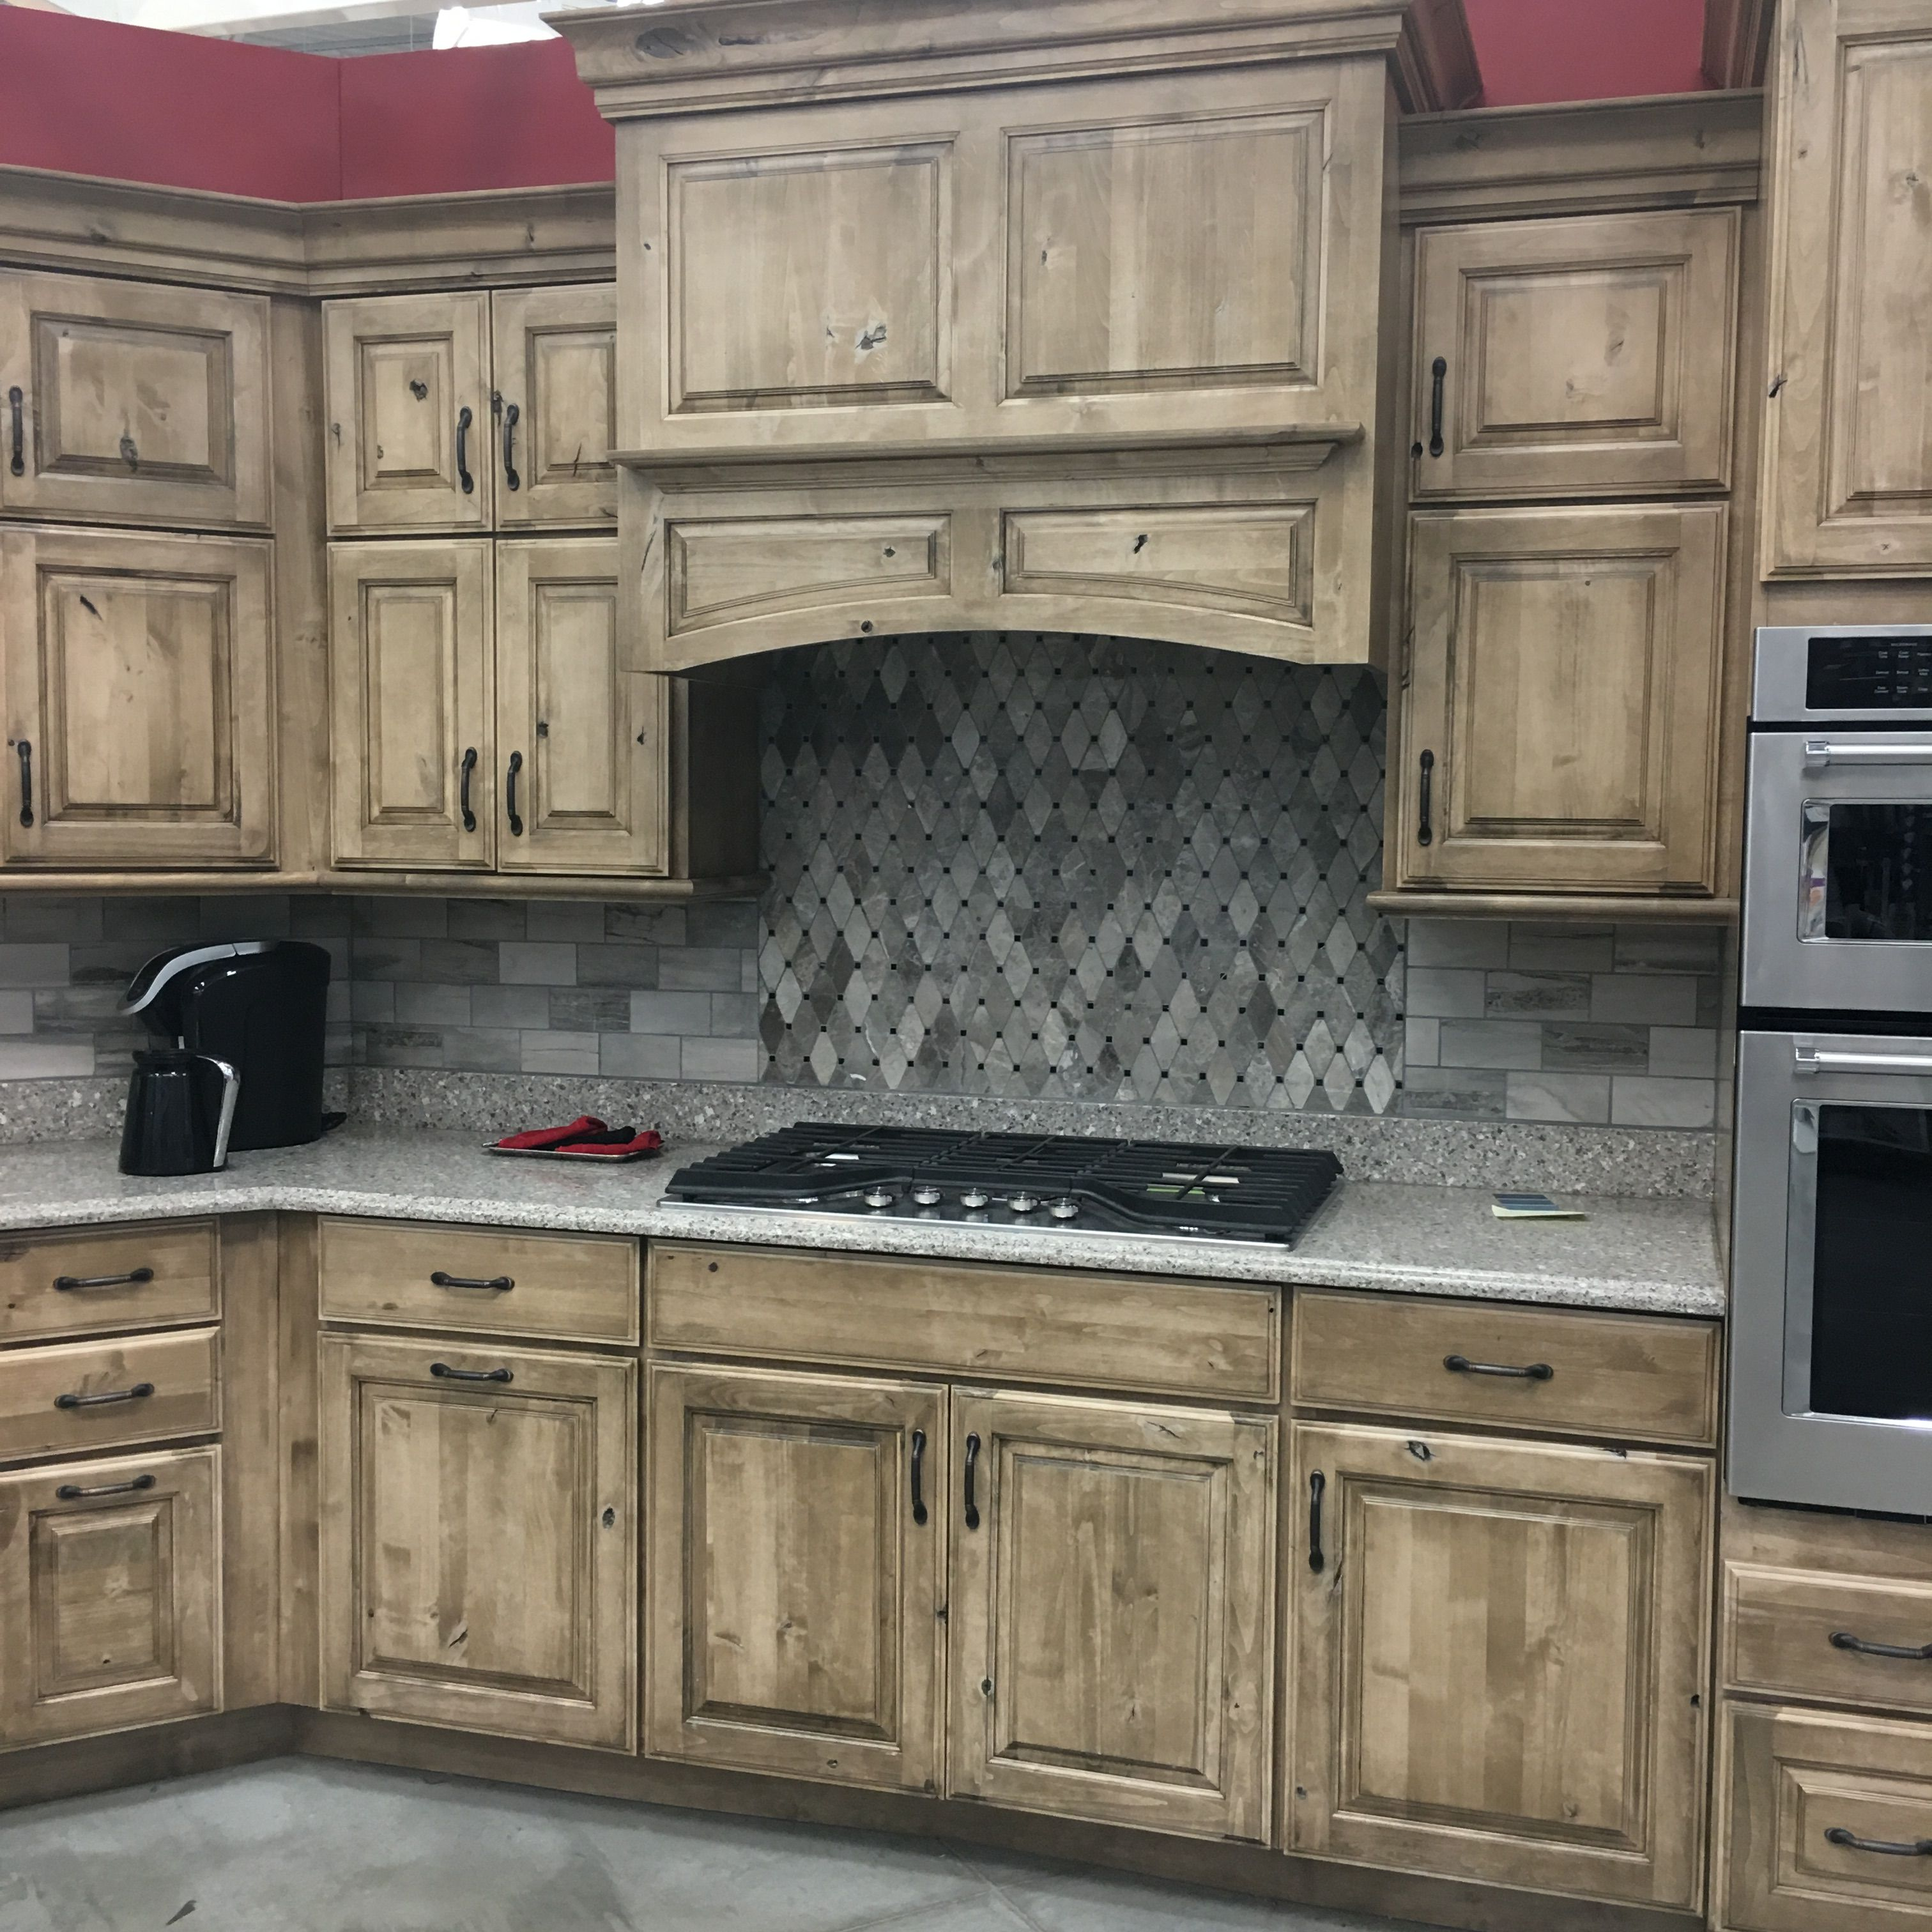 Love These Cabinets Distressed Kitchen Cabinets Kitchen Cabinet Styles Redo Kitchen Cabinets